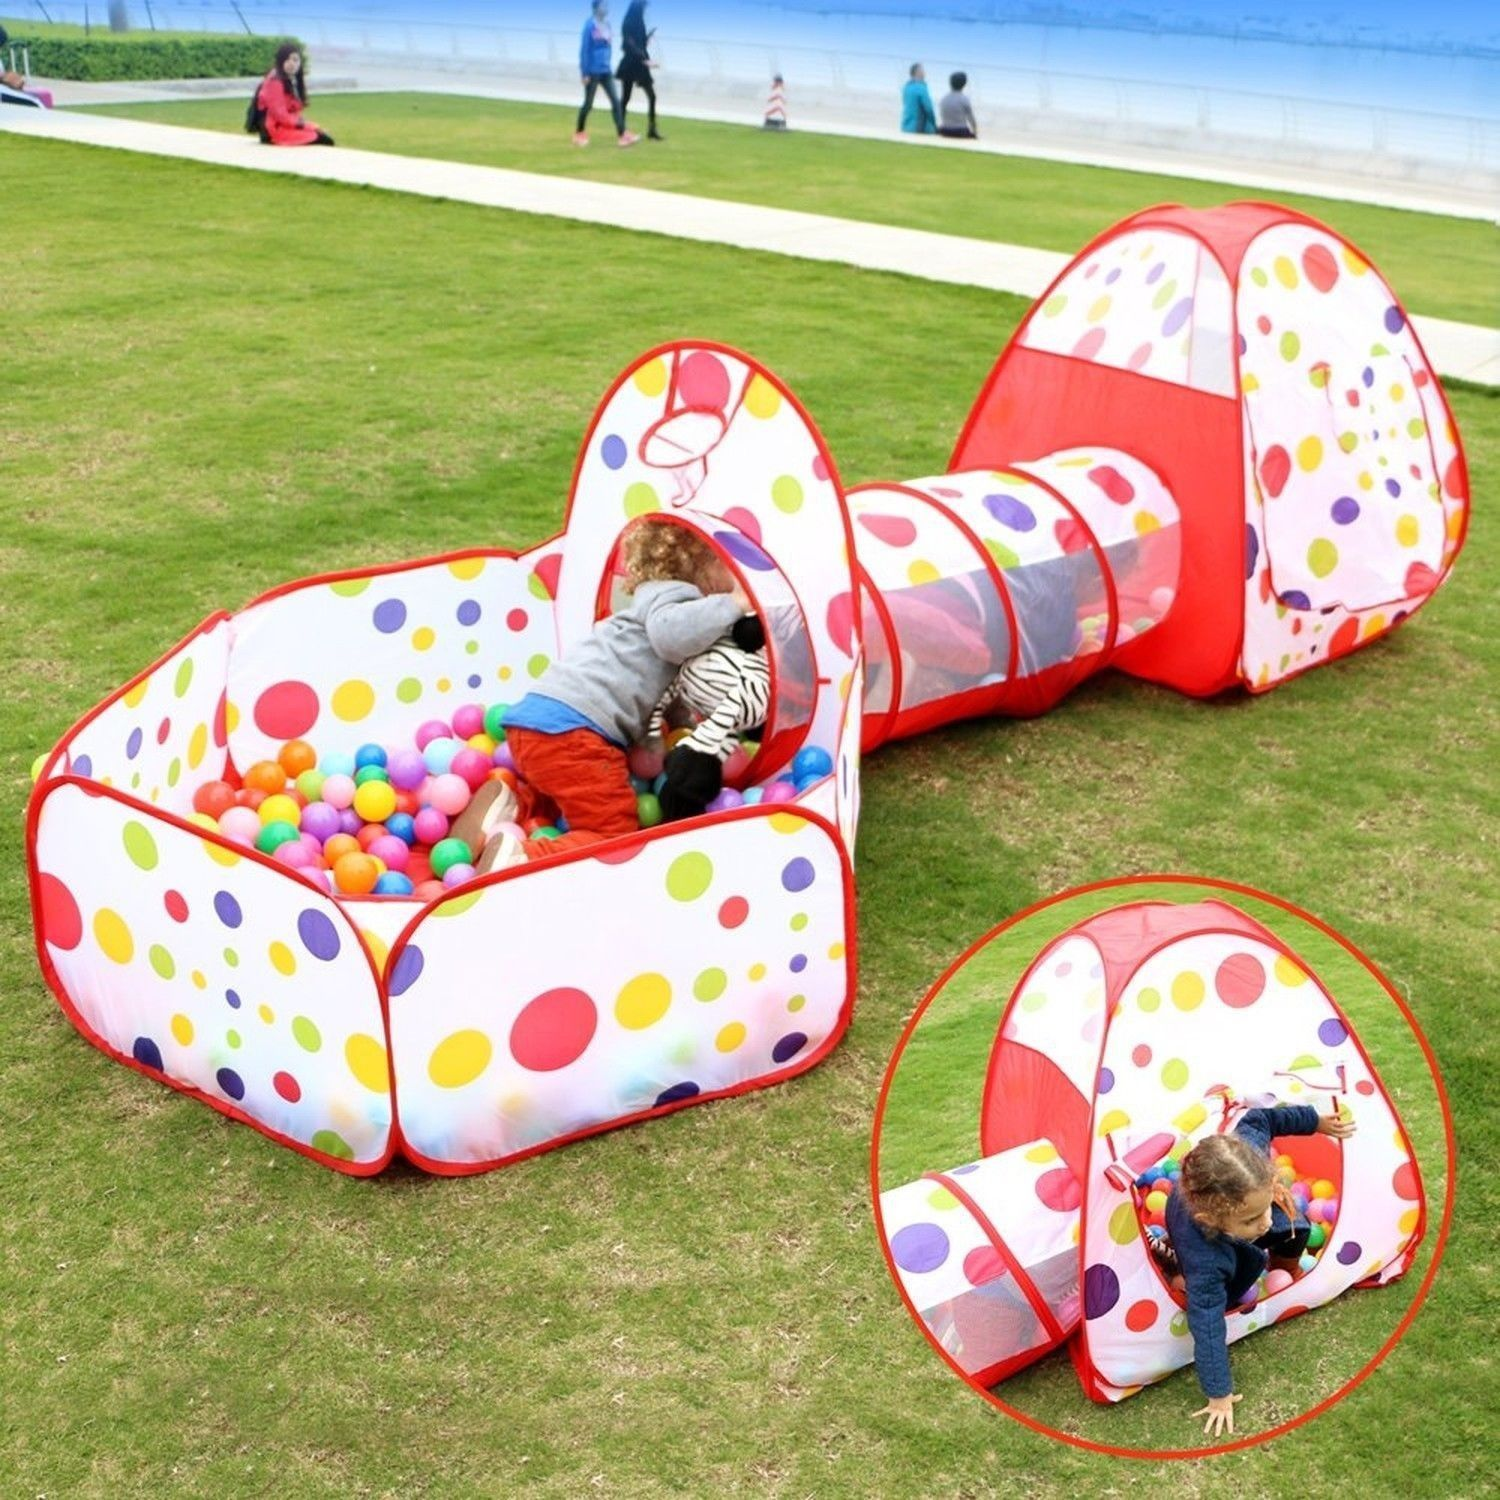 EocuSun Pop up Kids Play Tent with Tunnel and Ball Pit Indoor and Outdoor Eas.  sc 1 st  Pinterest & Eocusun Pop Up Kids Play Tent With Tunnel And Ball Pit Indoor And ...